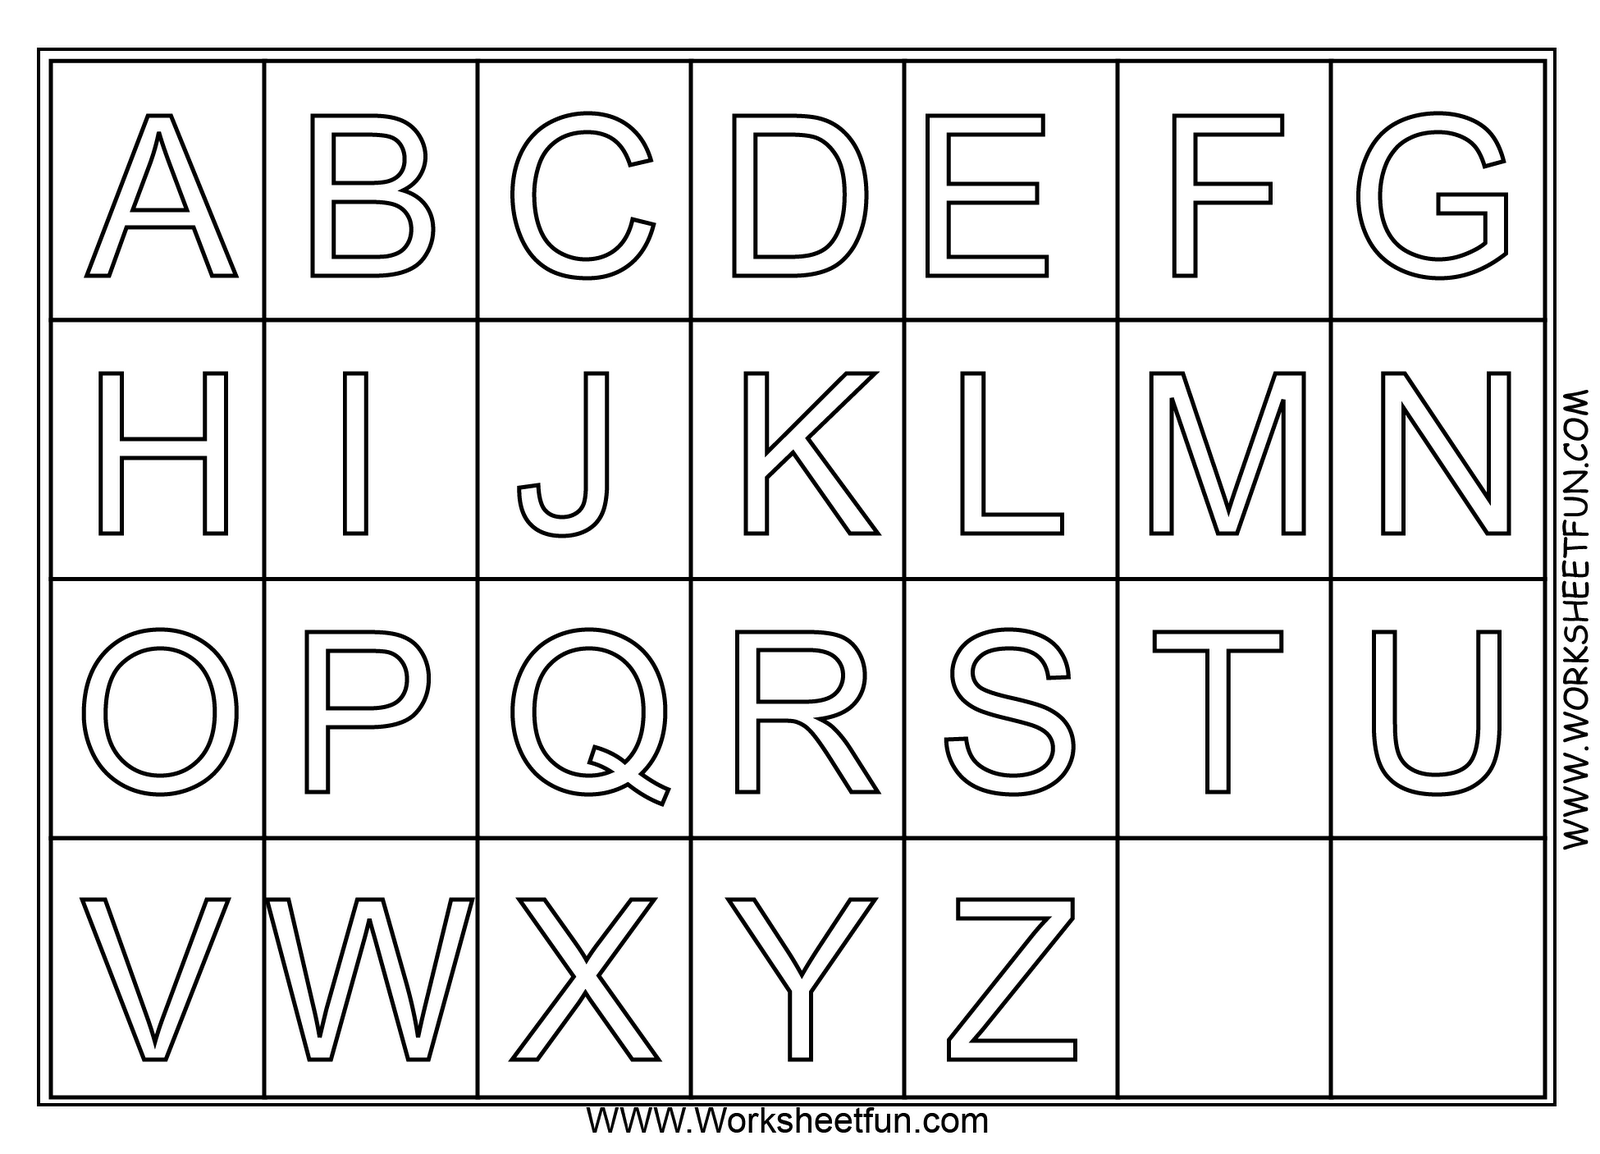 a to z alphabet coloring pages free printable alphabet coloring pages for kids 123 kids a alphabet z to coloring pages